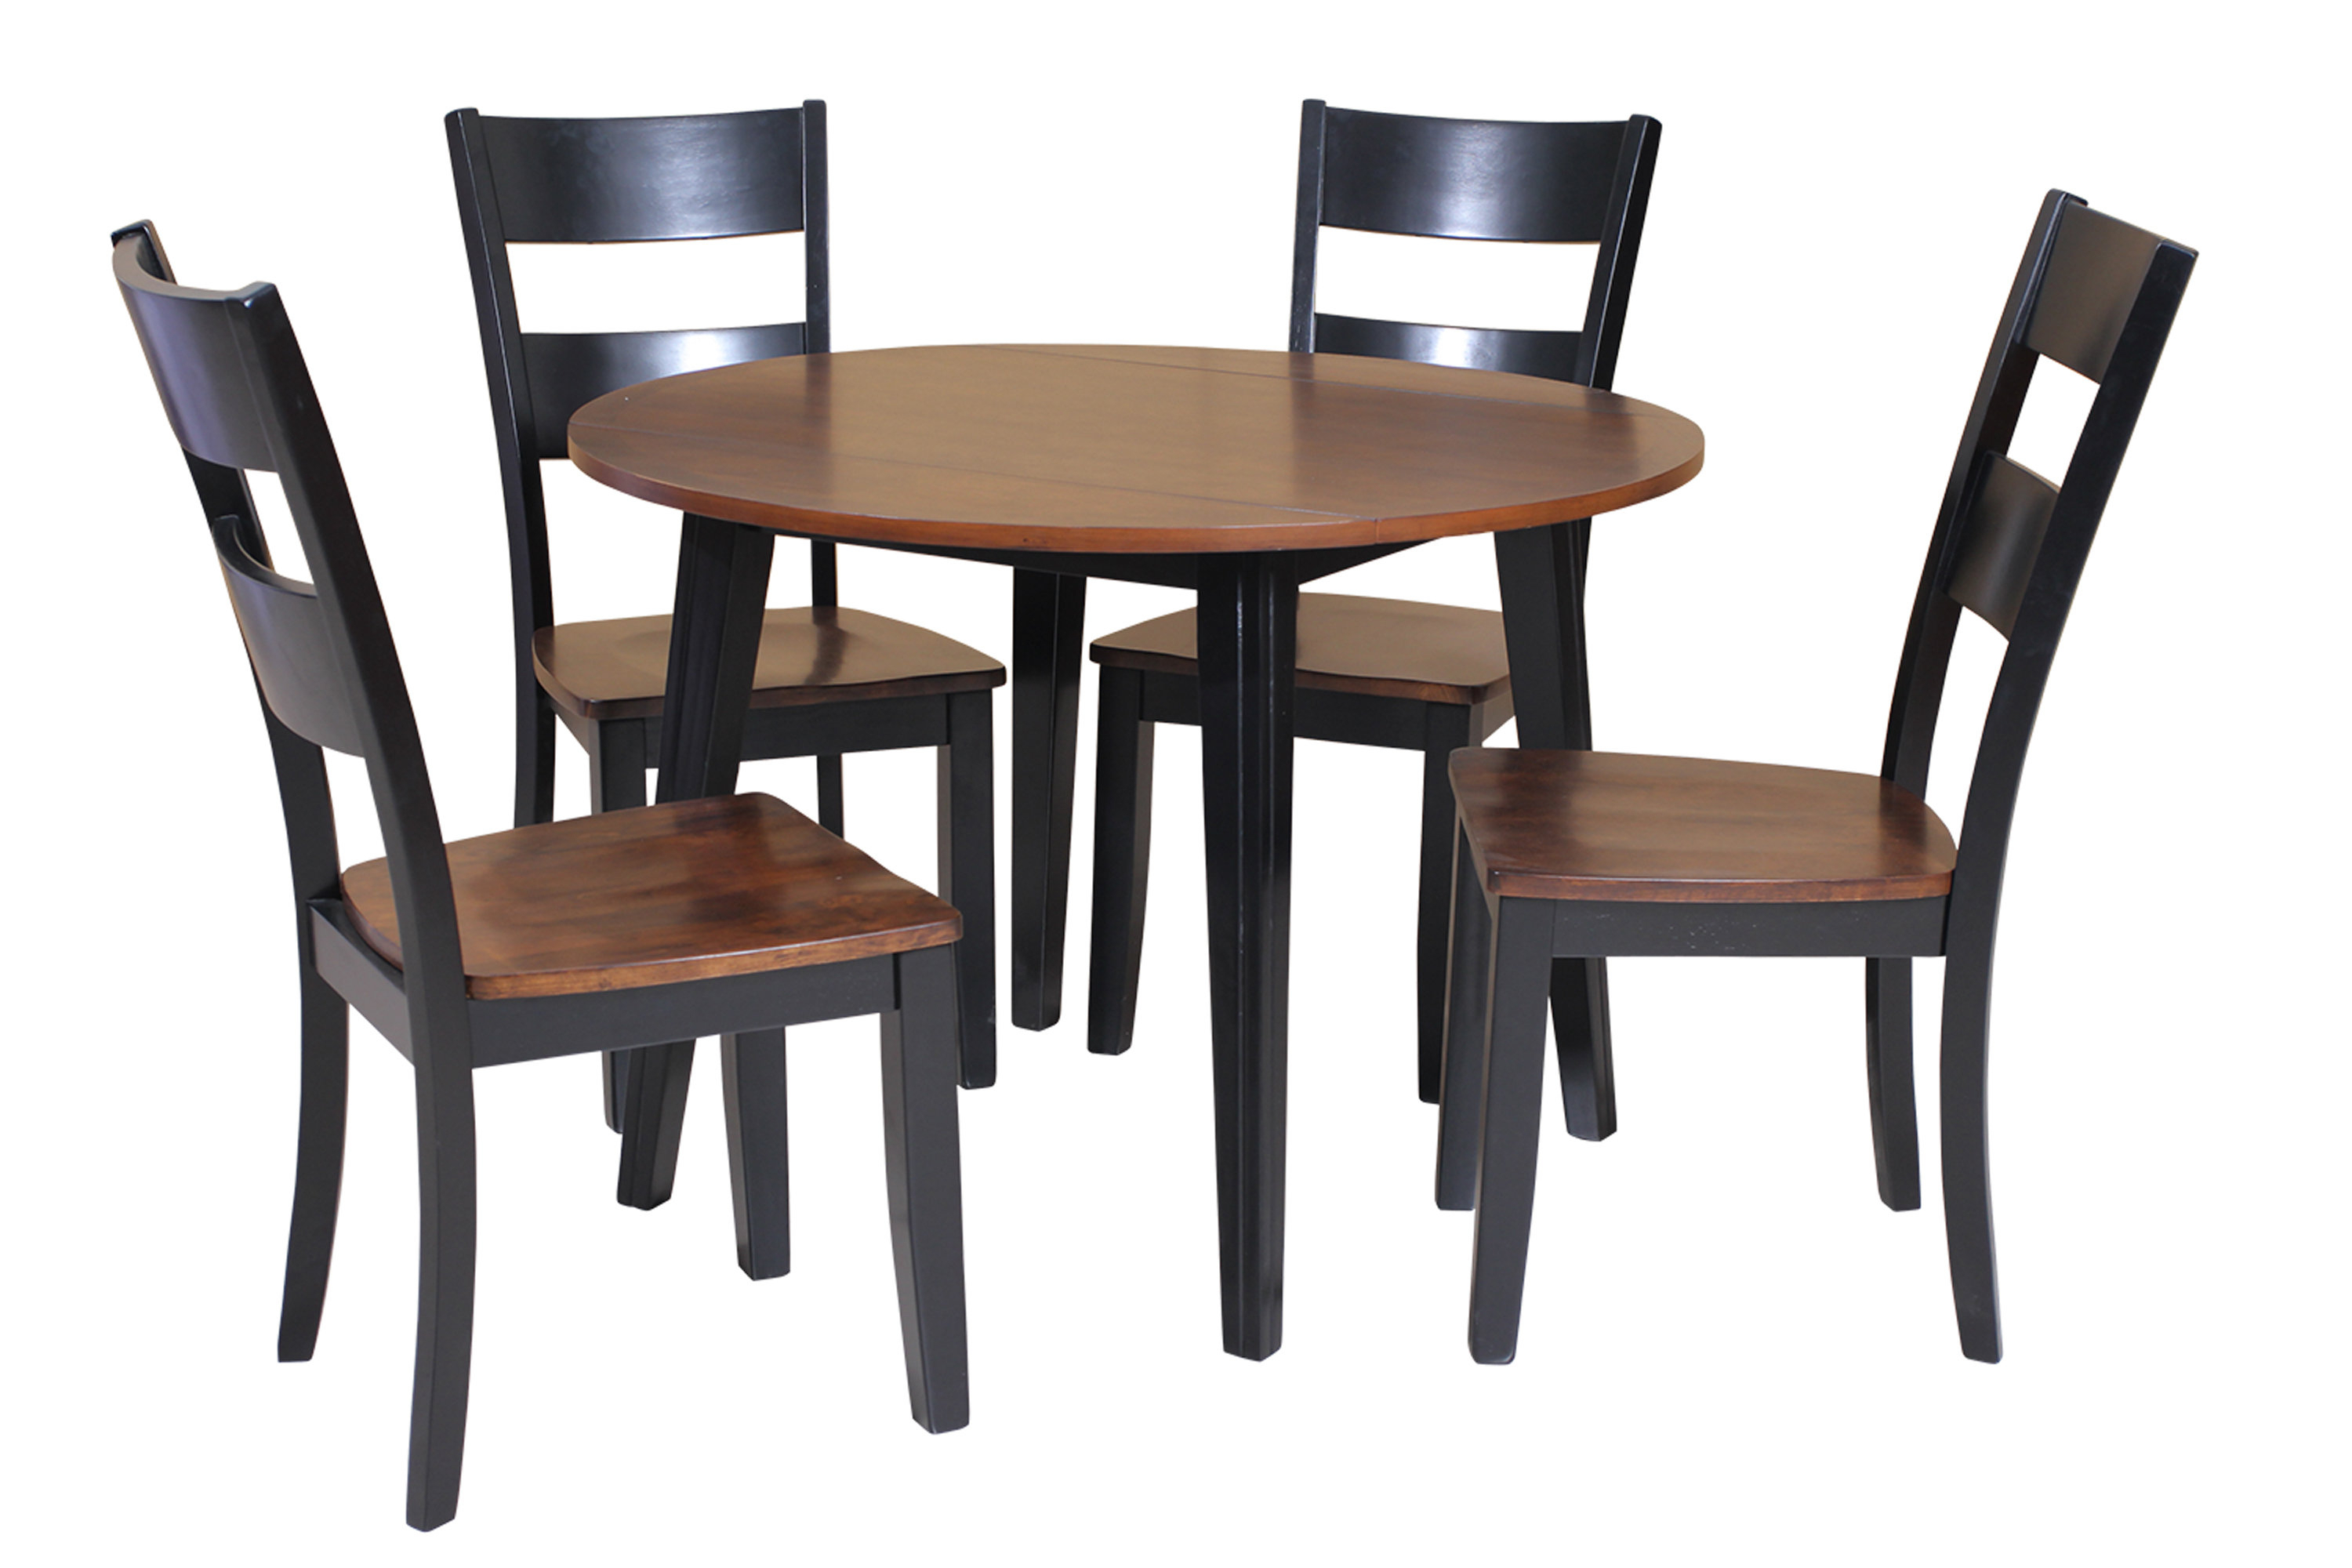 Most Popular West Hill Family Table 3 Piece Dining Sets Regarding Dinh 5 Piece Drop Leaf Solid Wood Dining Set (View 16 of 20)